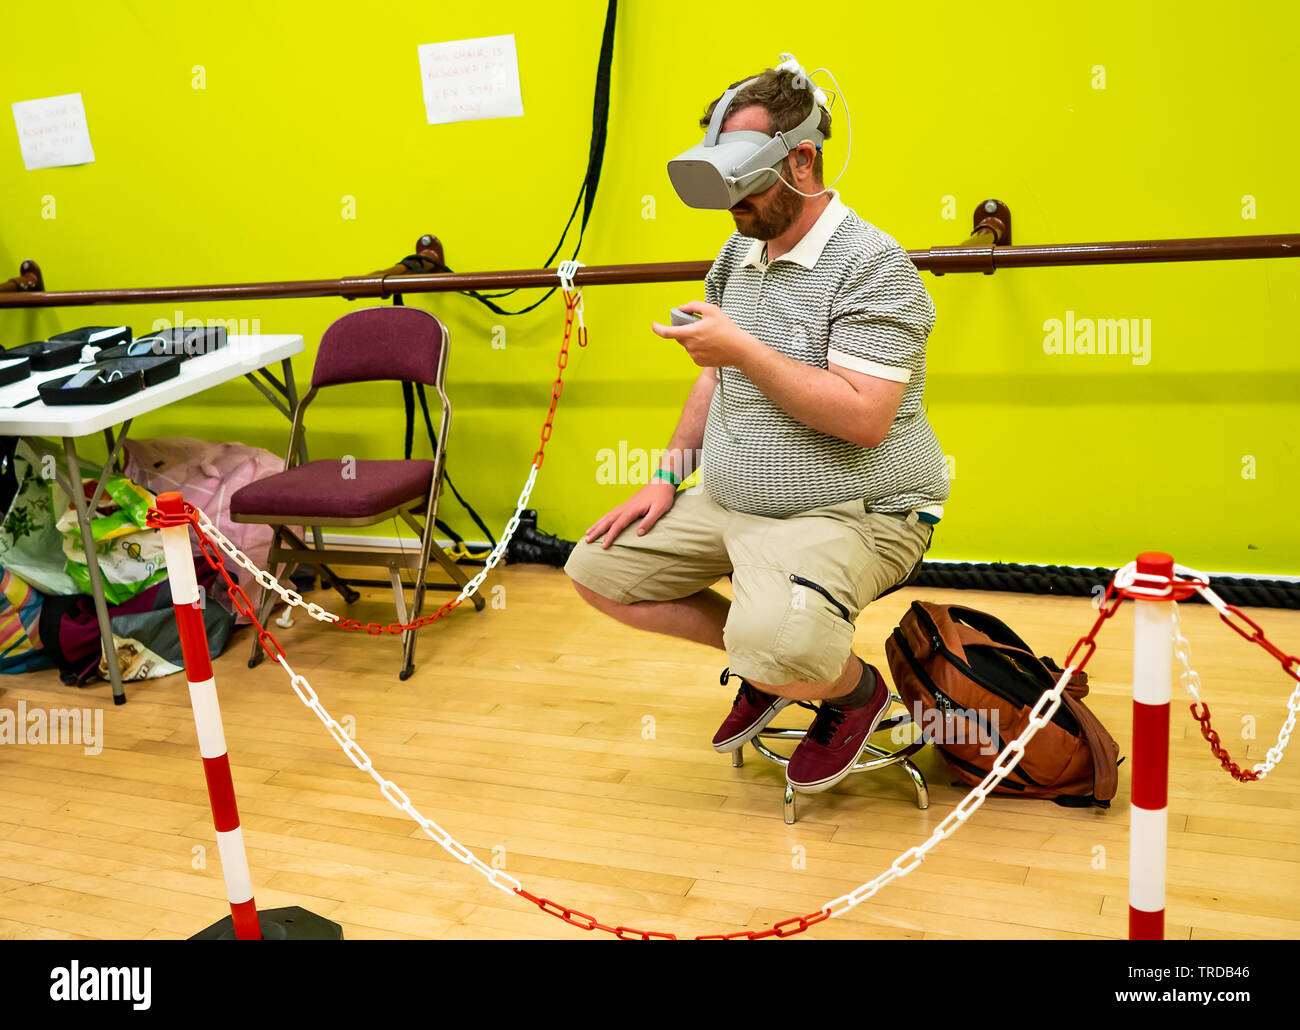 Great Yarmouth Comicon 2019 – Young man sitting on a chair immersed in a virtual reality computer game at the Comicon event in the seaside town of Gre - Stock Image